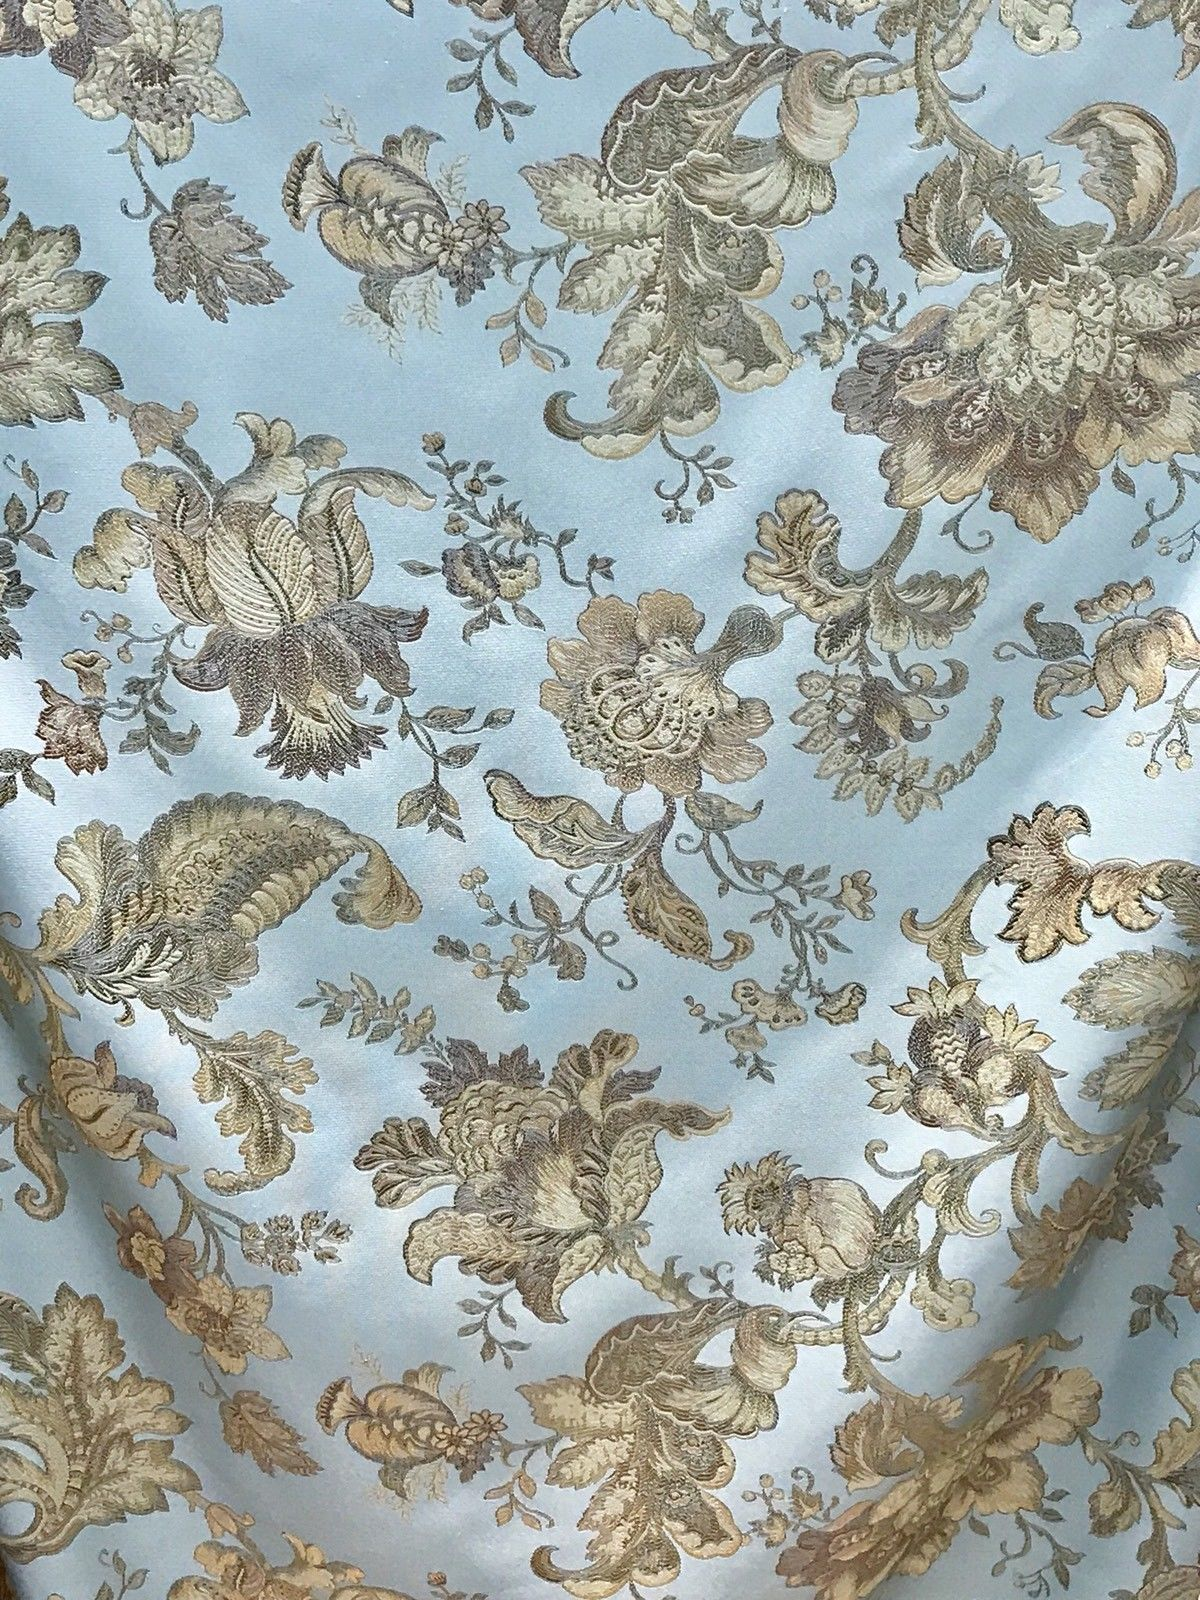 SWATCH Brocade Satin Fabric- Antique Aqua Blue - Embroidery Damask - Fancy Styles Fabric Boutique